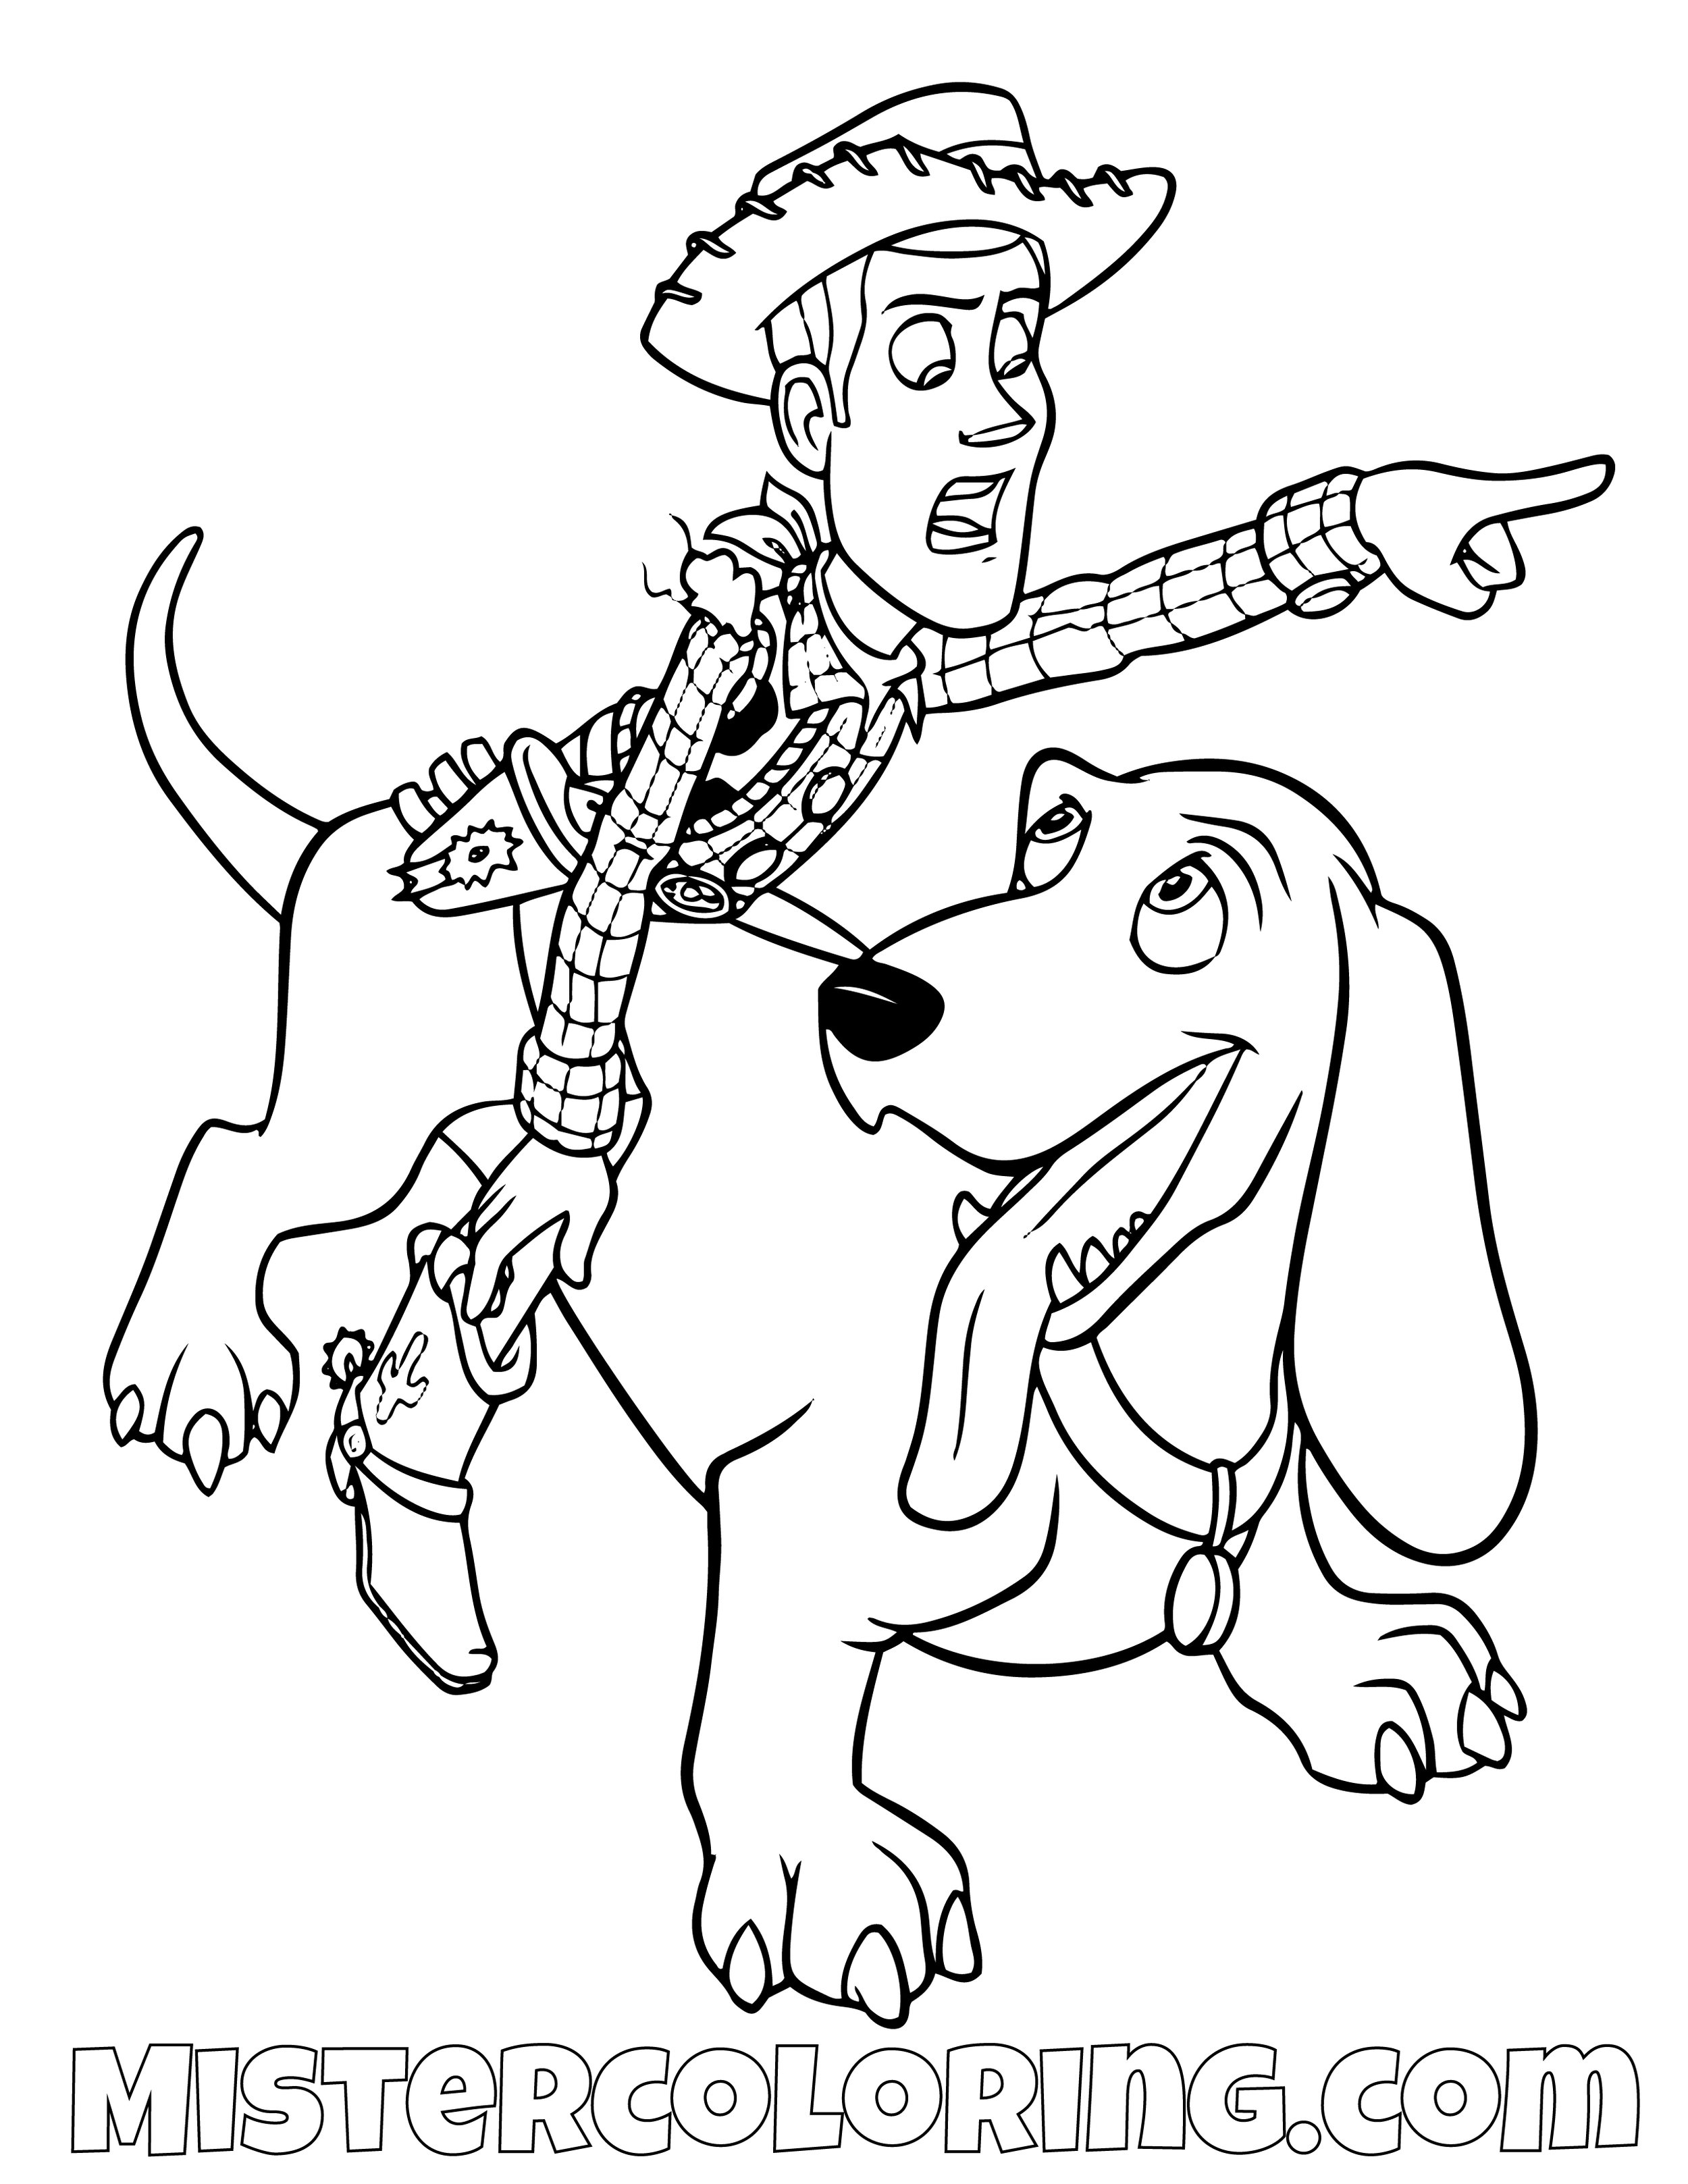 Sheriff Woody Riding A Dog Toy Story Coloring Page